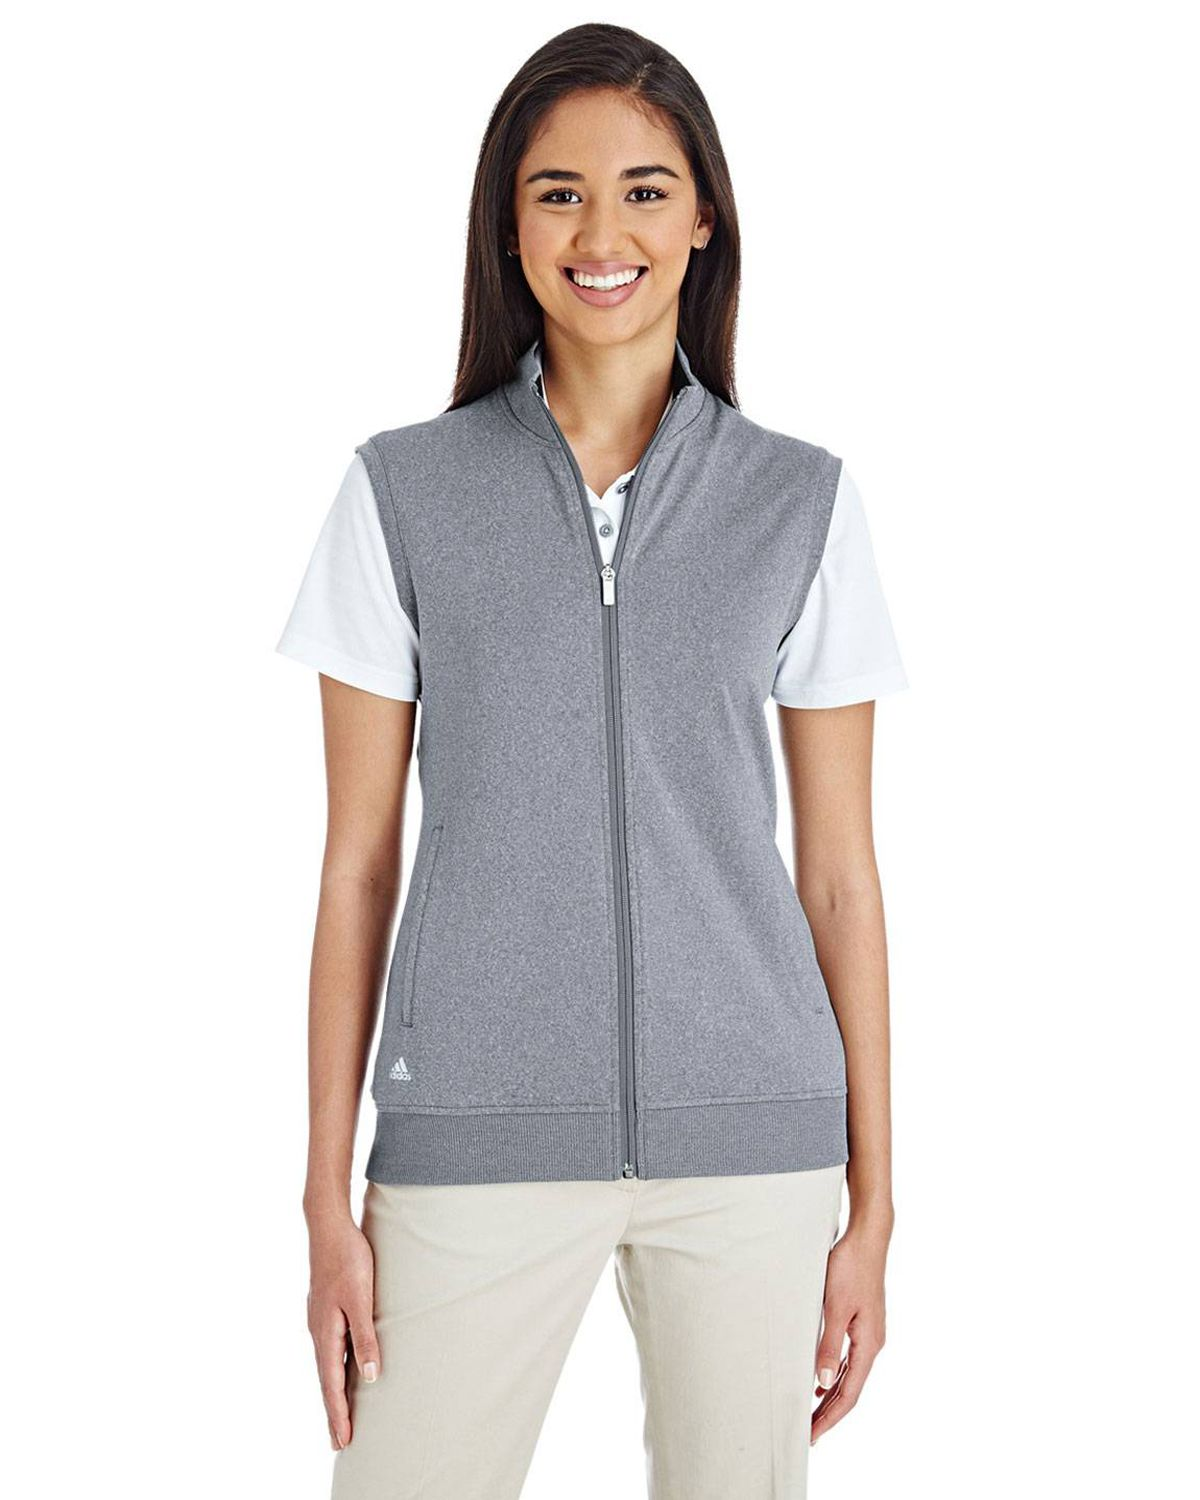 Adidas Golf A272 Women's Full-Zip Club Vest